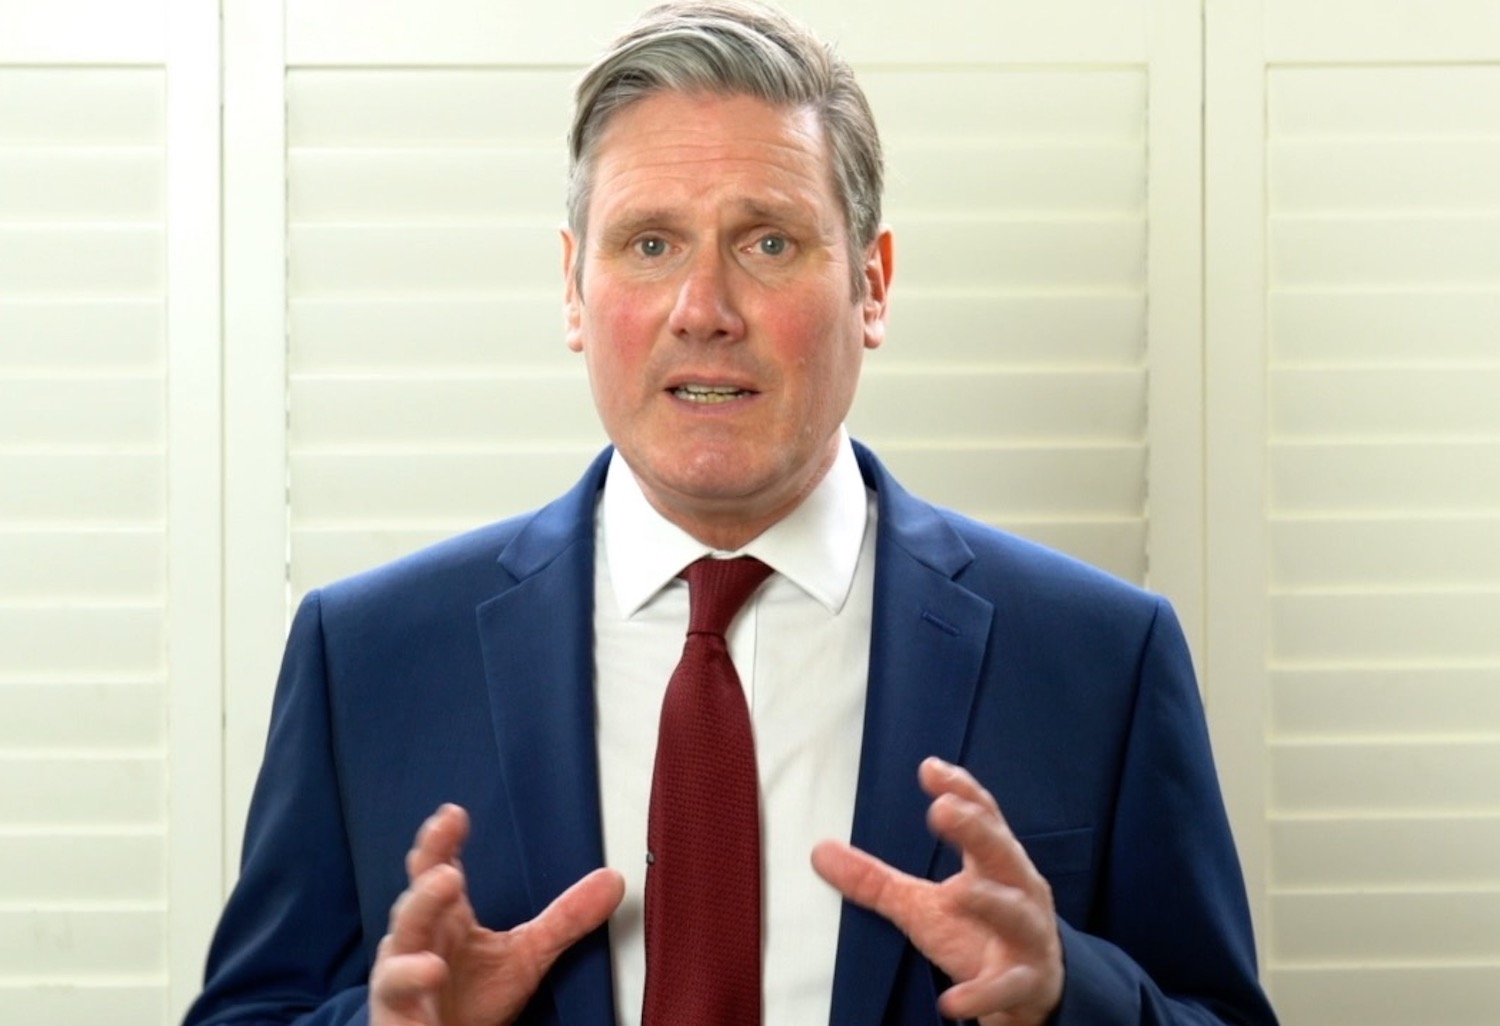 Keir Starmer wins Labour leadership contest